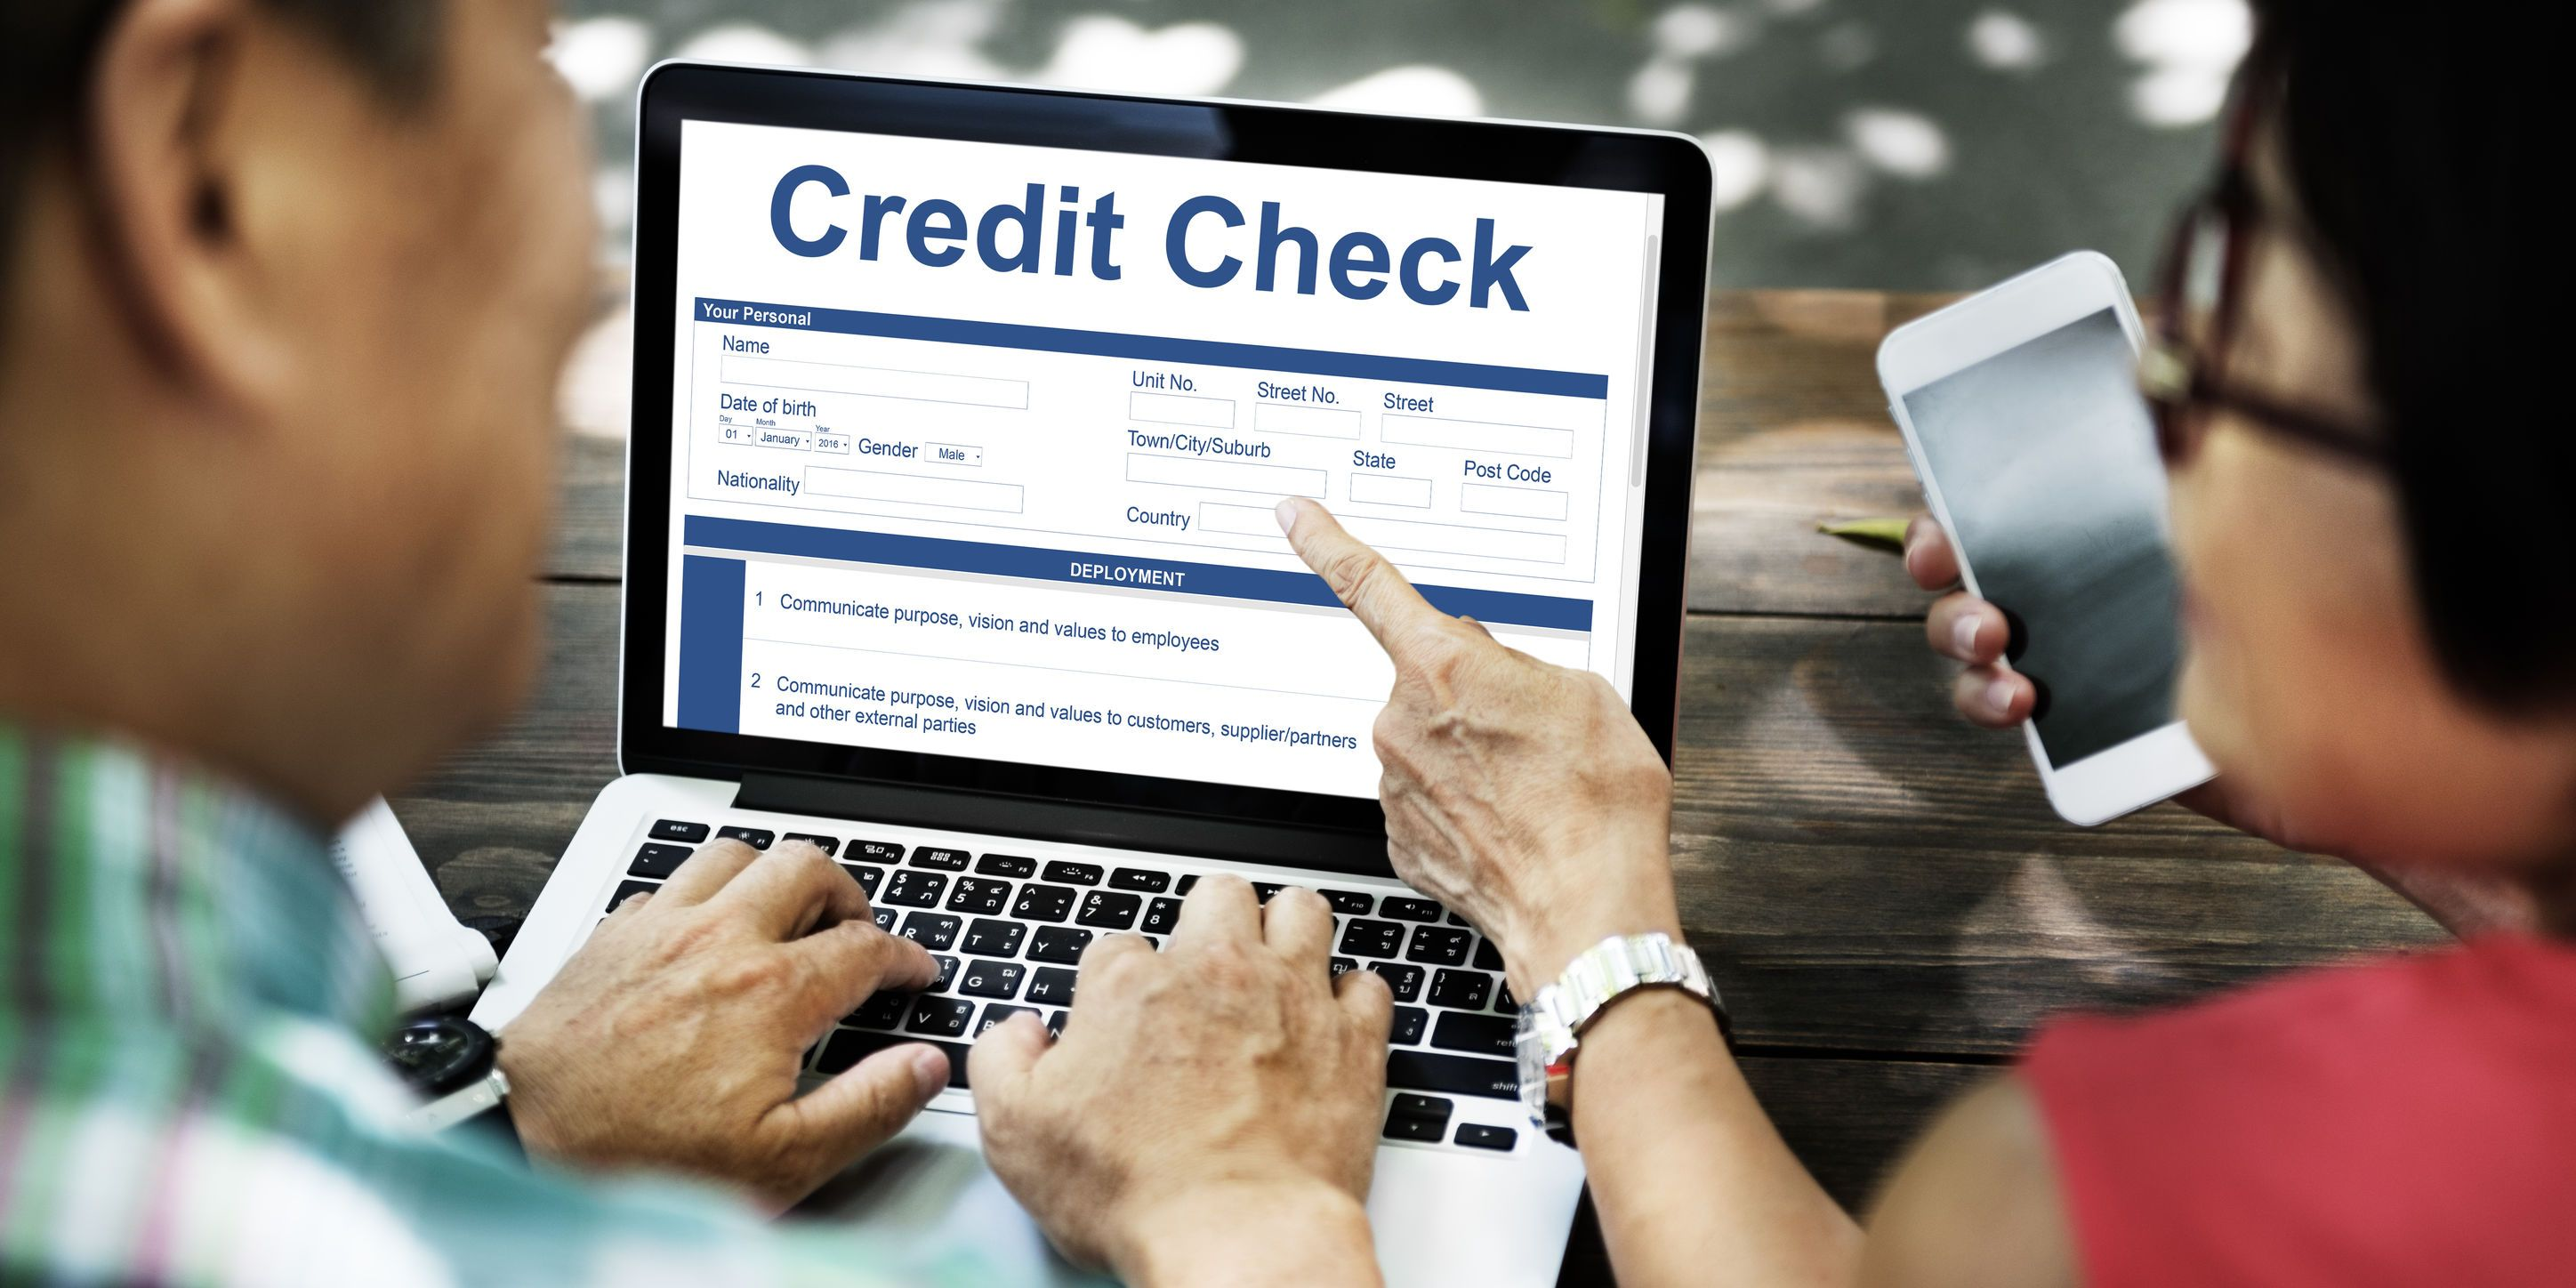 Credit scores are very important because they are a